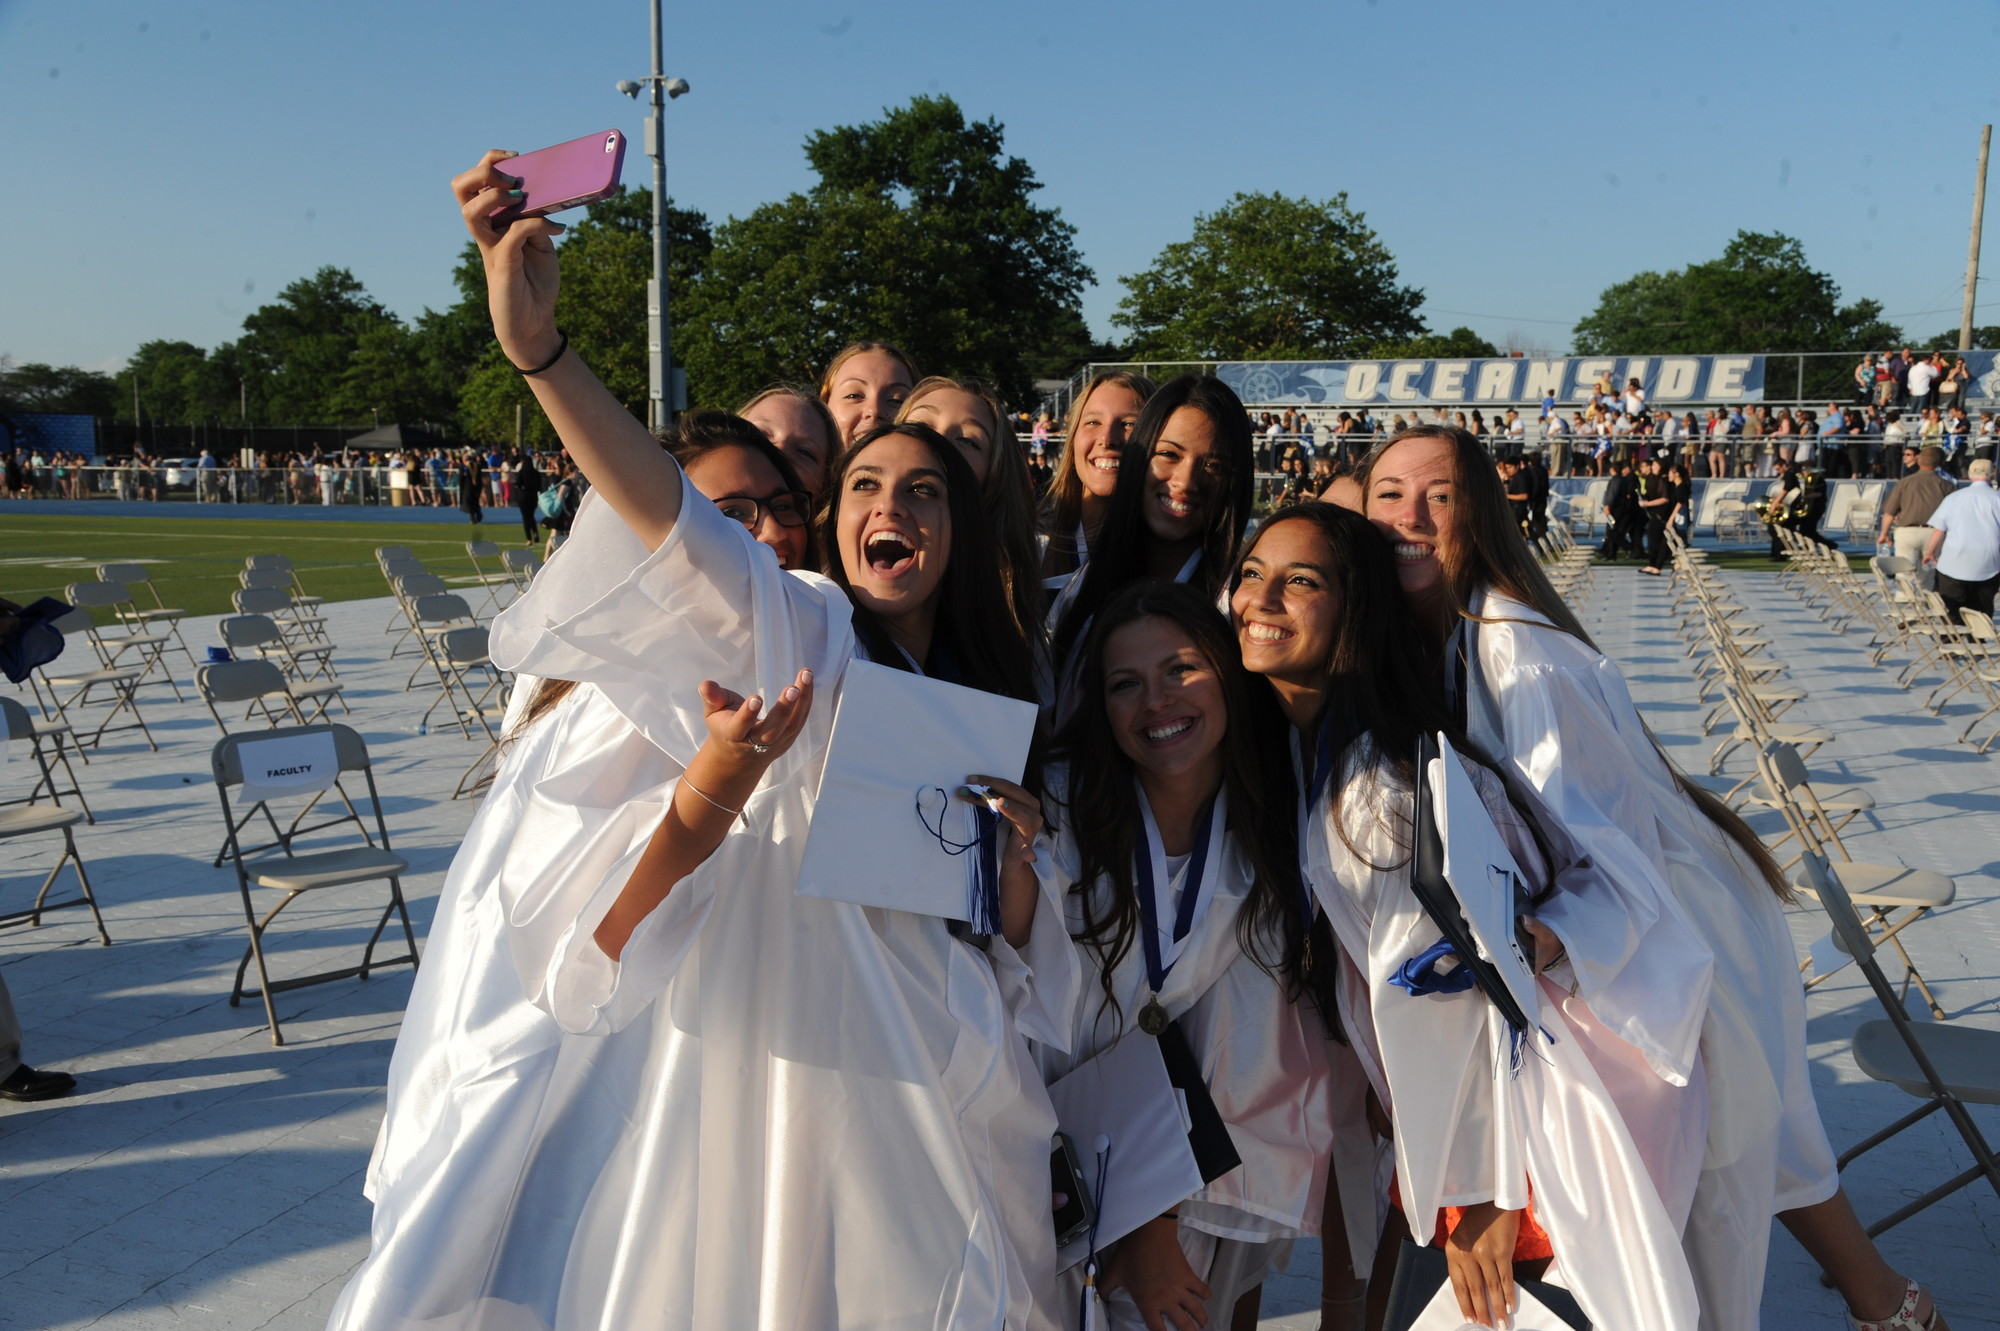 Taking a selfie, these graduates made sure to have a memento of their big day.